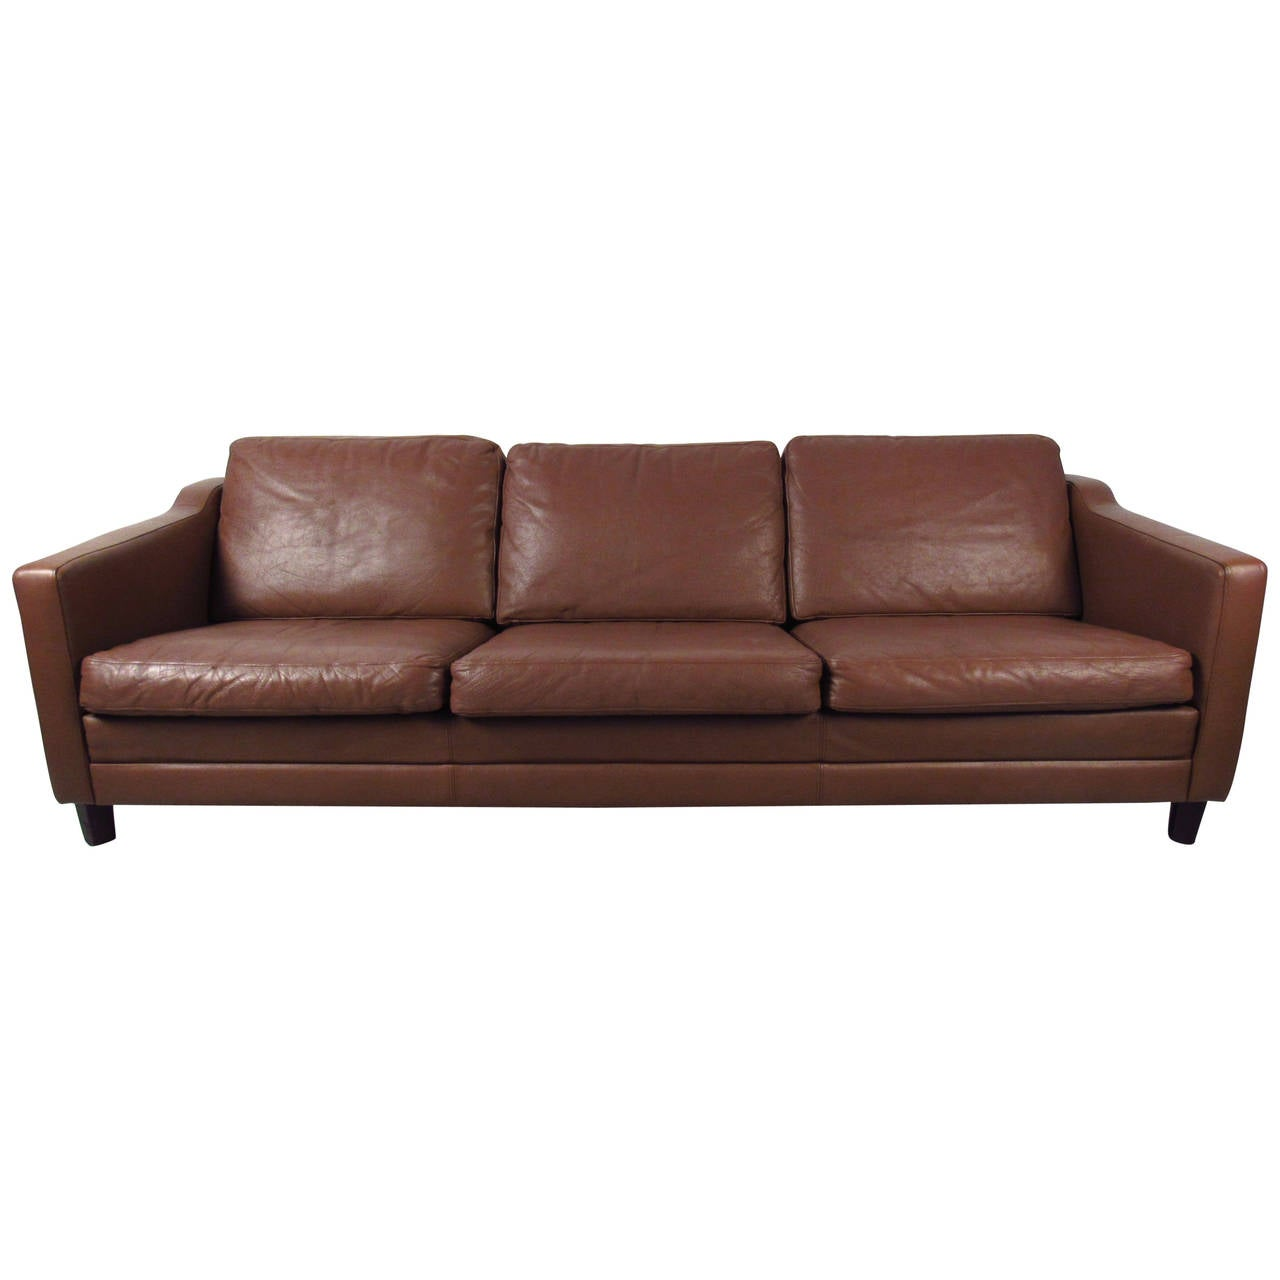 Mid Century Modern Sofas: Mid-Century Modern Danish Leather Sofa In The Style Of